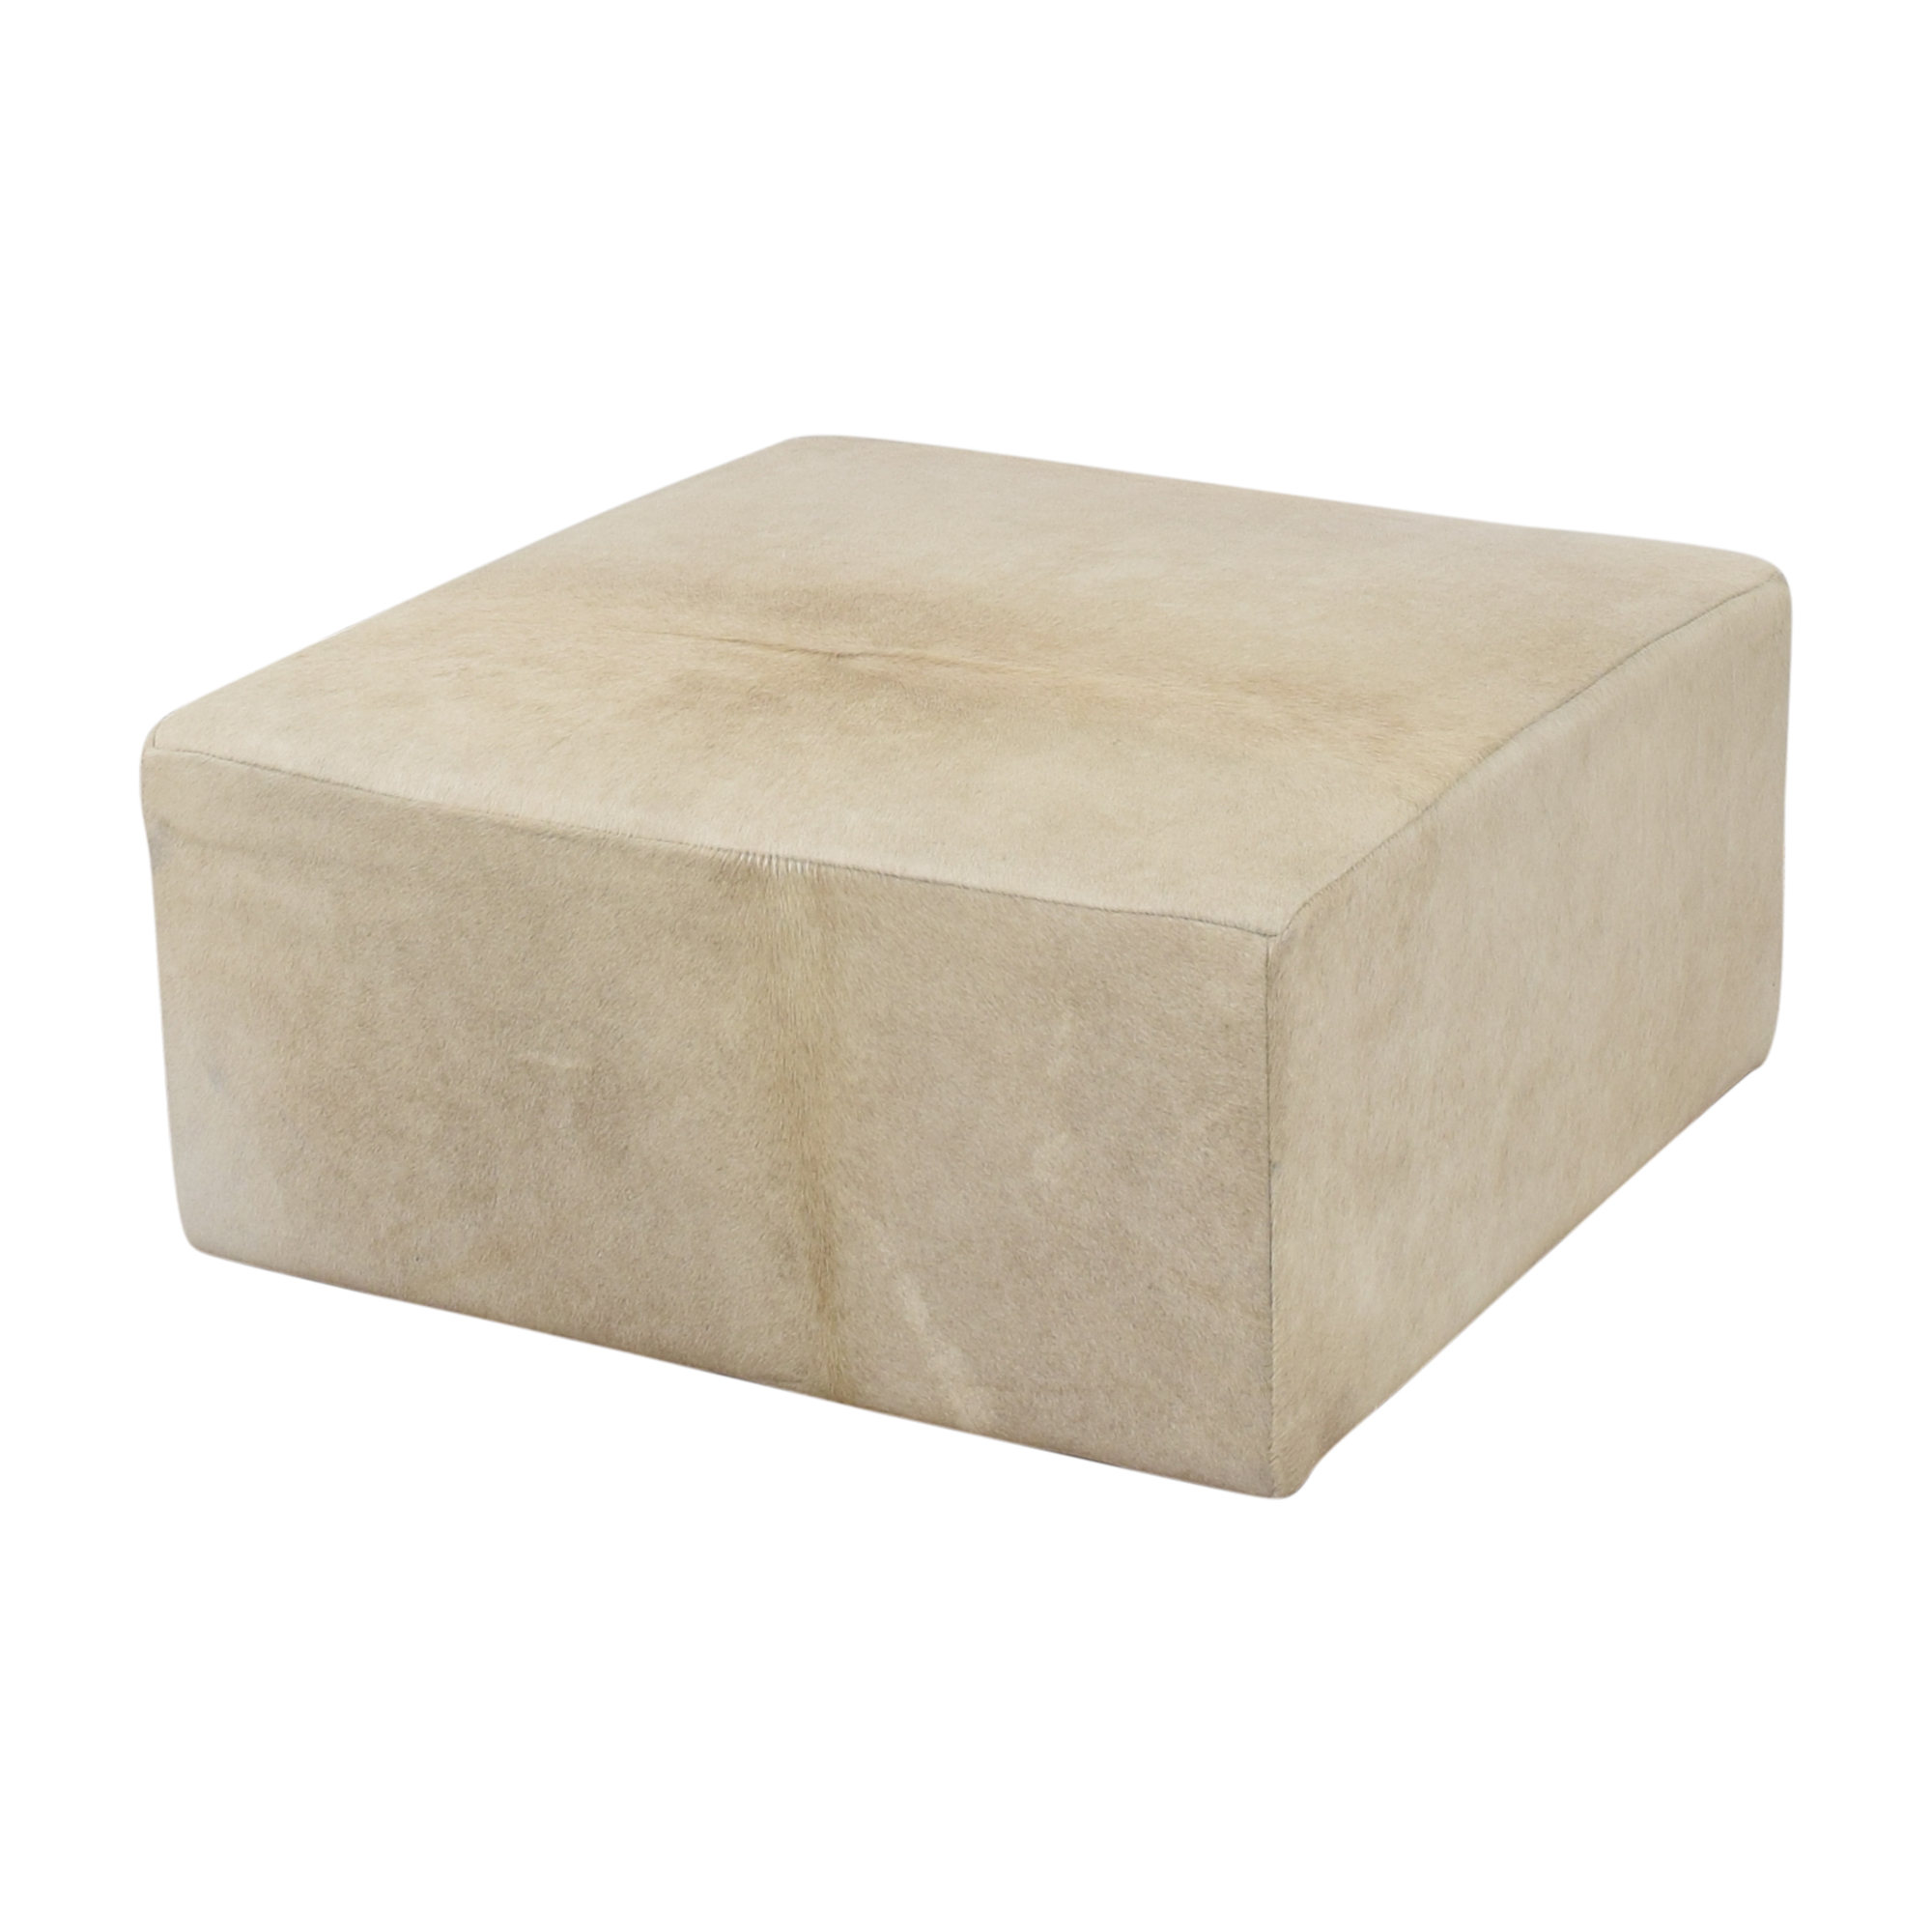 Restoration Hardware Restoration Hardware Cooper Hair-On-Hide Square Ottoman used